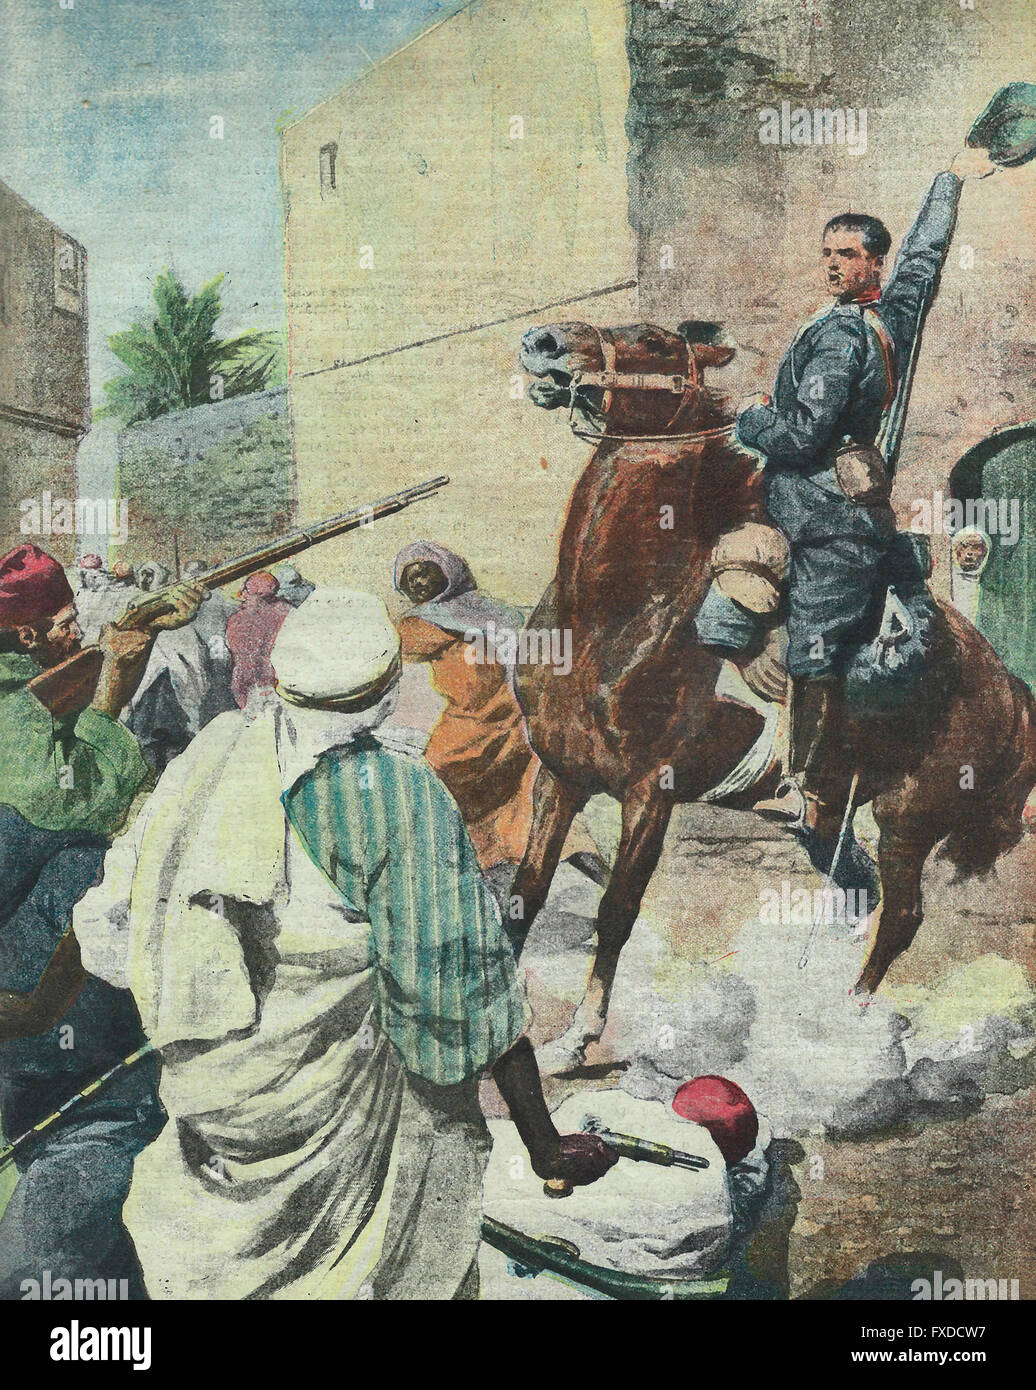 The heroic actions of an Italian cavalryman at the Battle of the Wells of Benina in Cyrenaica 1913 - Stock Image